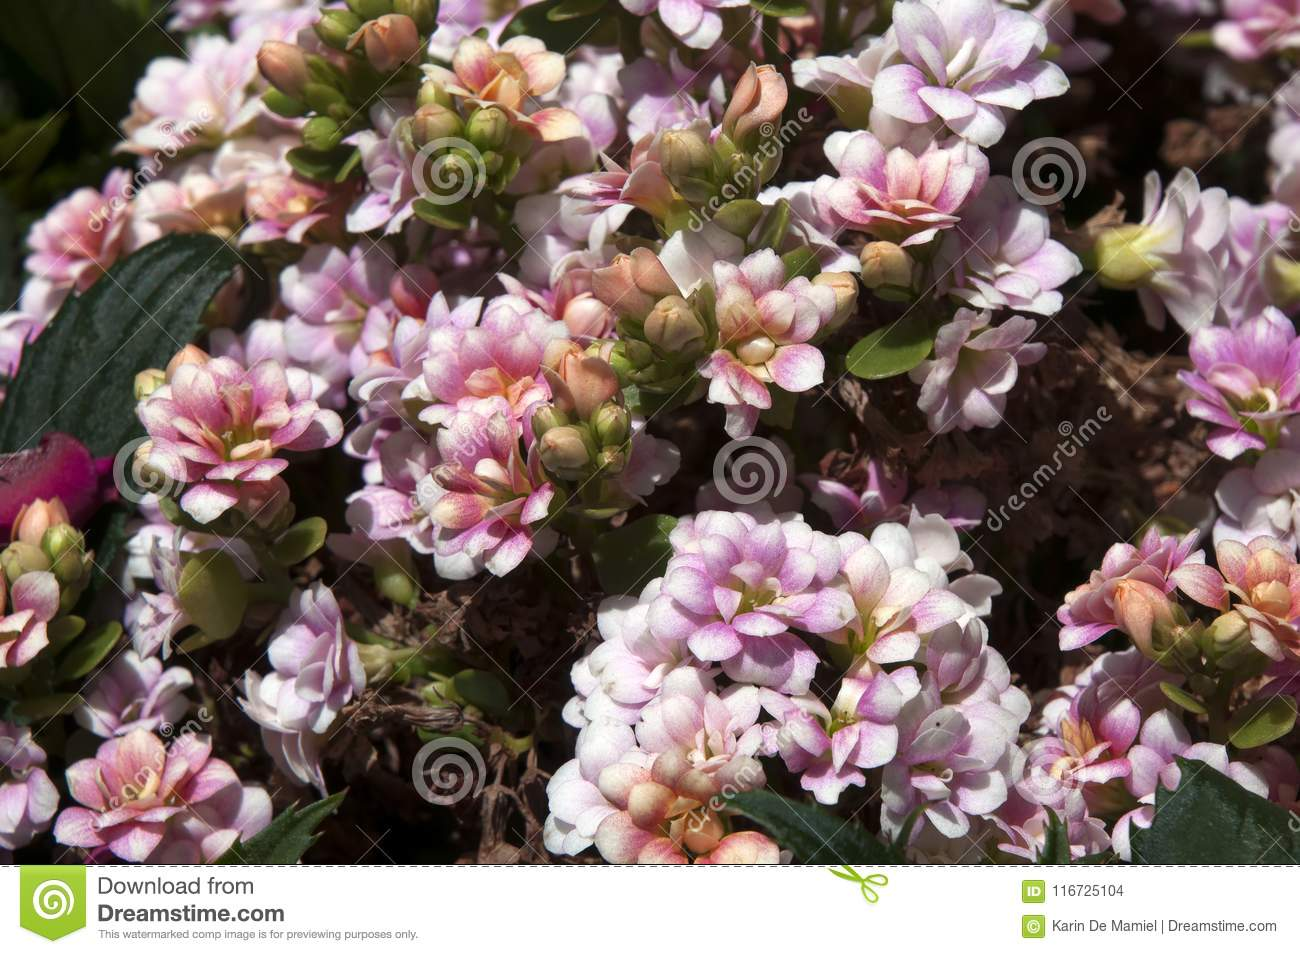 Shrub with small pink flowers stock photo image of pink bunch download shrub with small pink flowers stock photo image of pink bunch 116725104 mightylinksfo